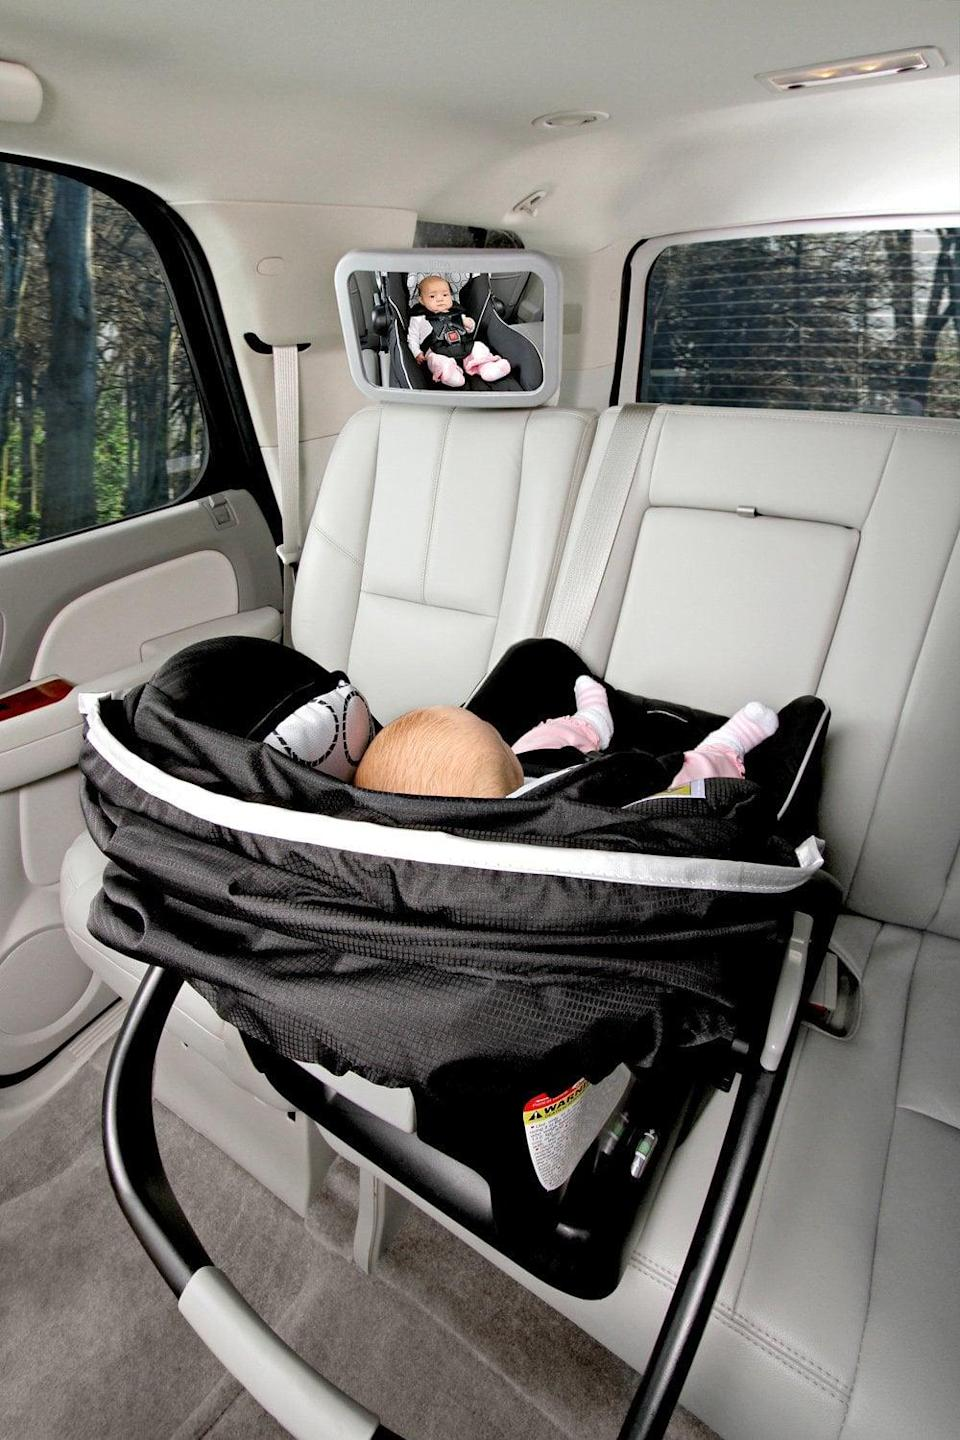 <p>If you fear driving alone with your little one in the backseat, <span>Britax's Back Seat Mirror</span> ($35) alleviates much of the stress of the unknown when your new baby is behind you.</p>